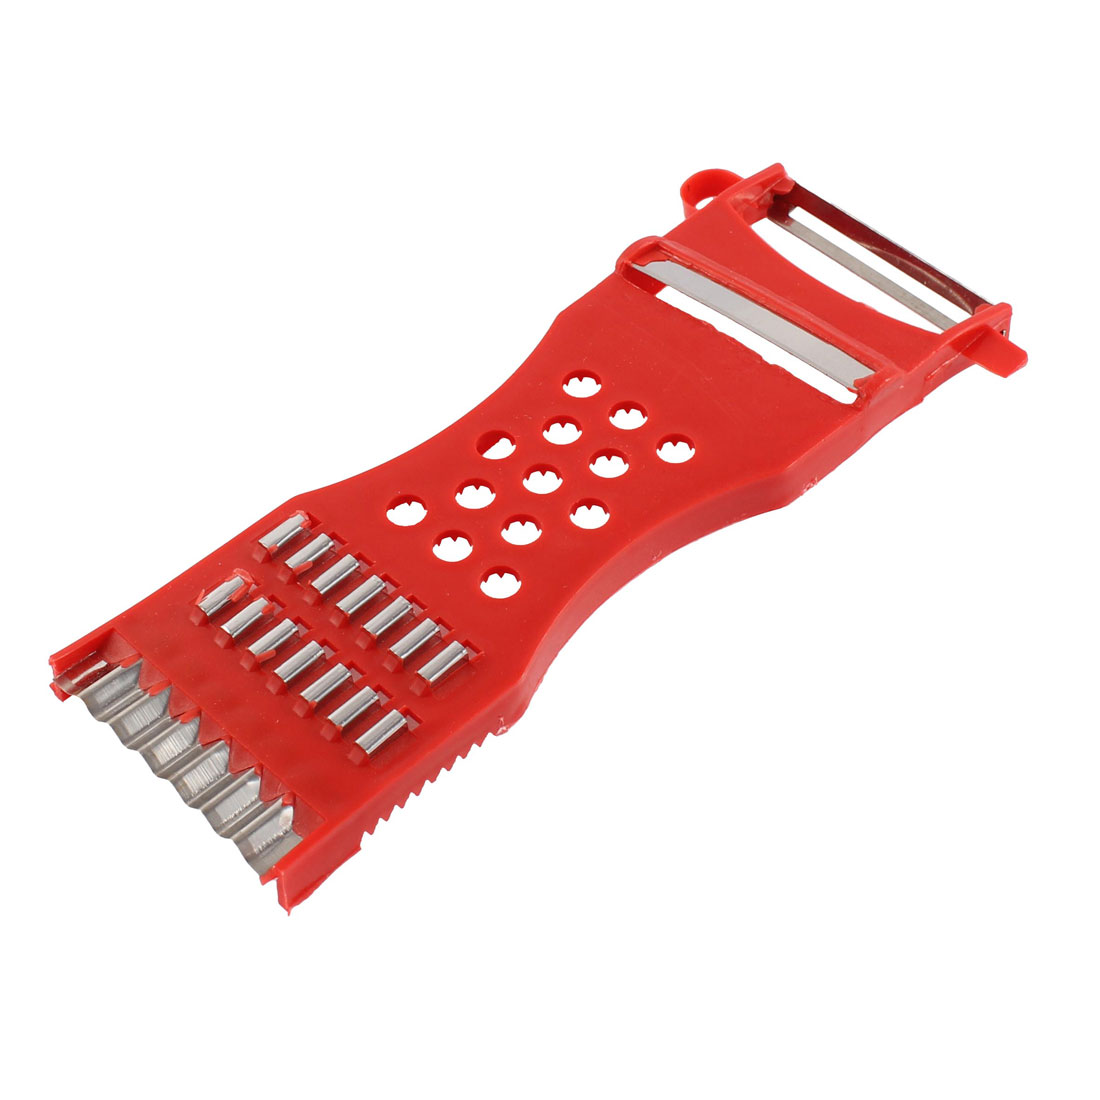 Home Kitchen Red Handle Metal Cutter Fruit Vegetable Peeler Grater Slicer Carrot Potato Cutter